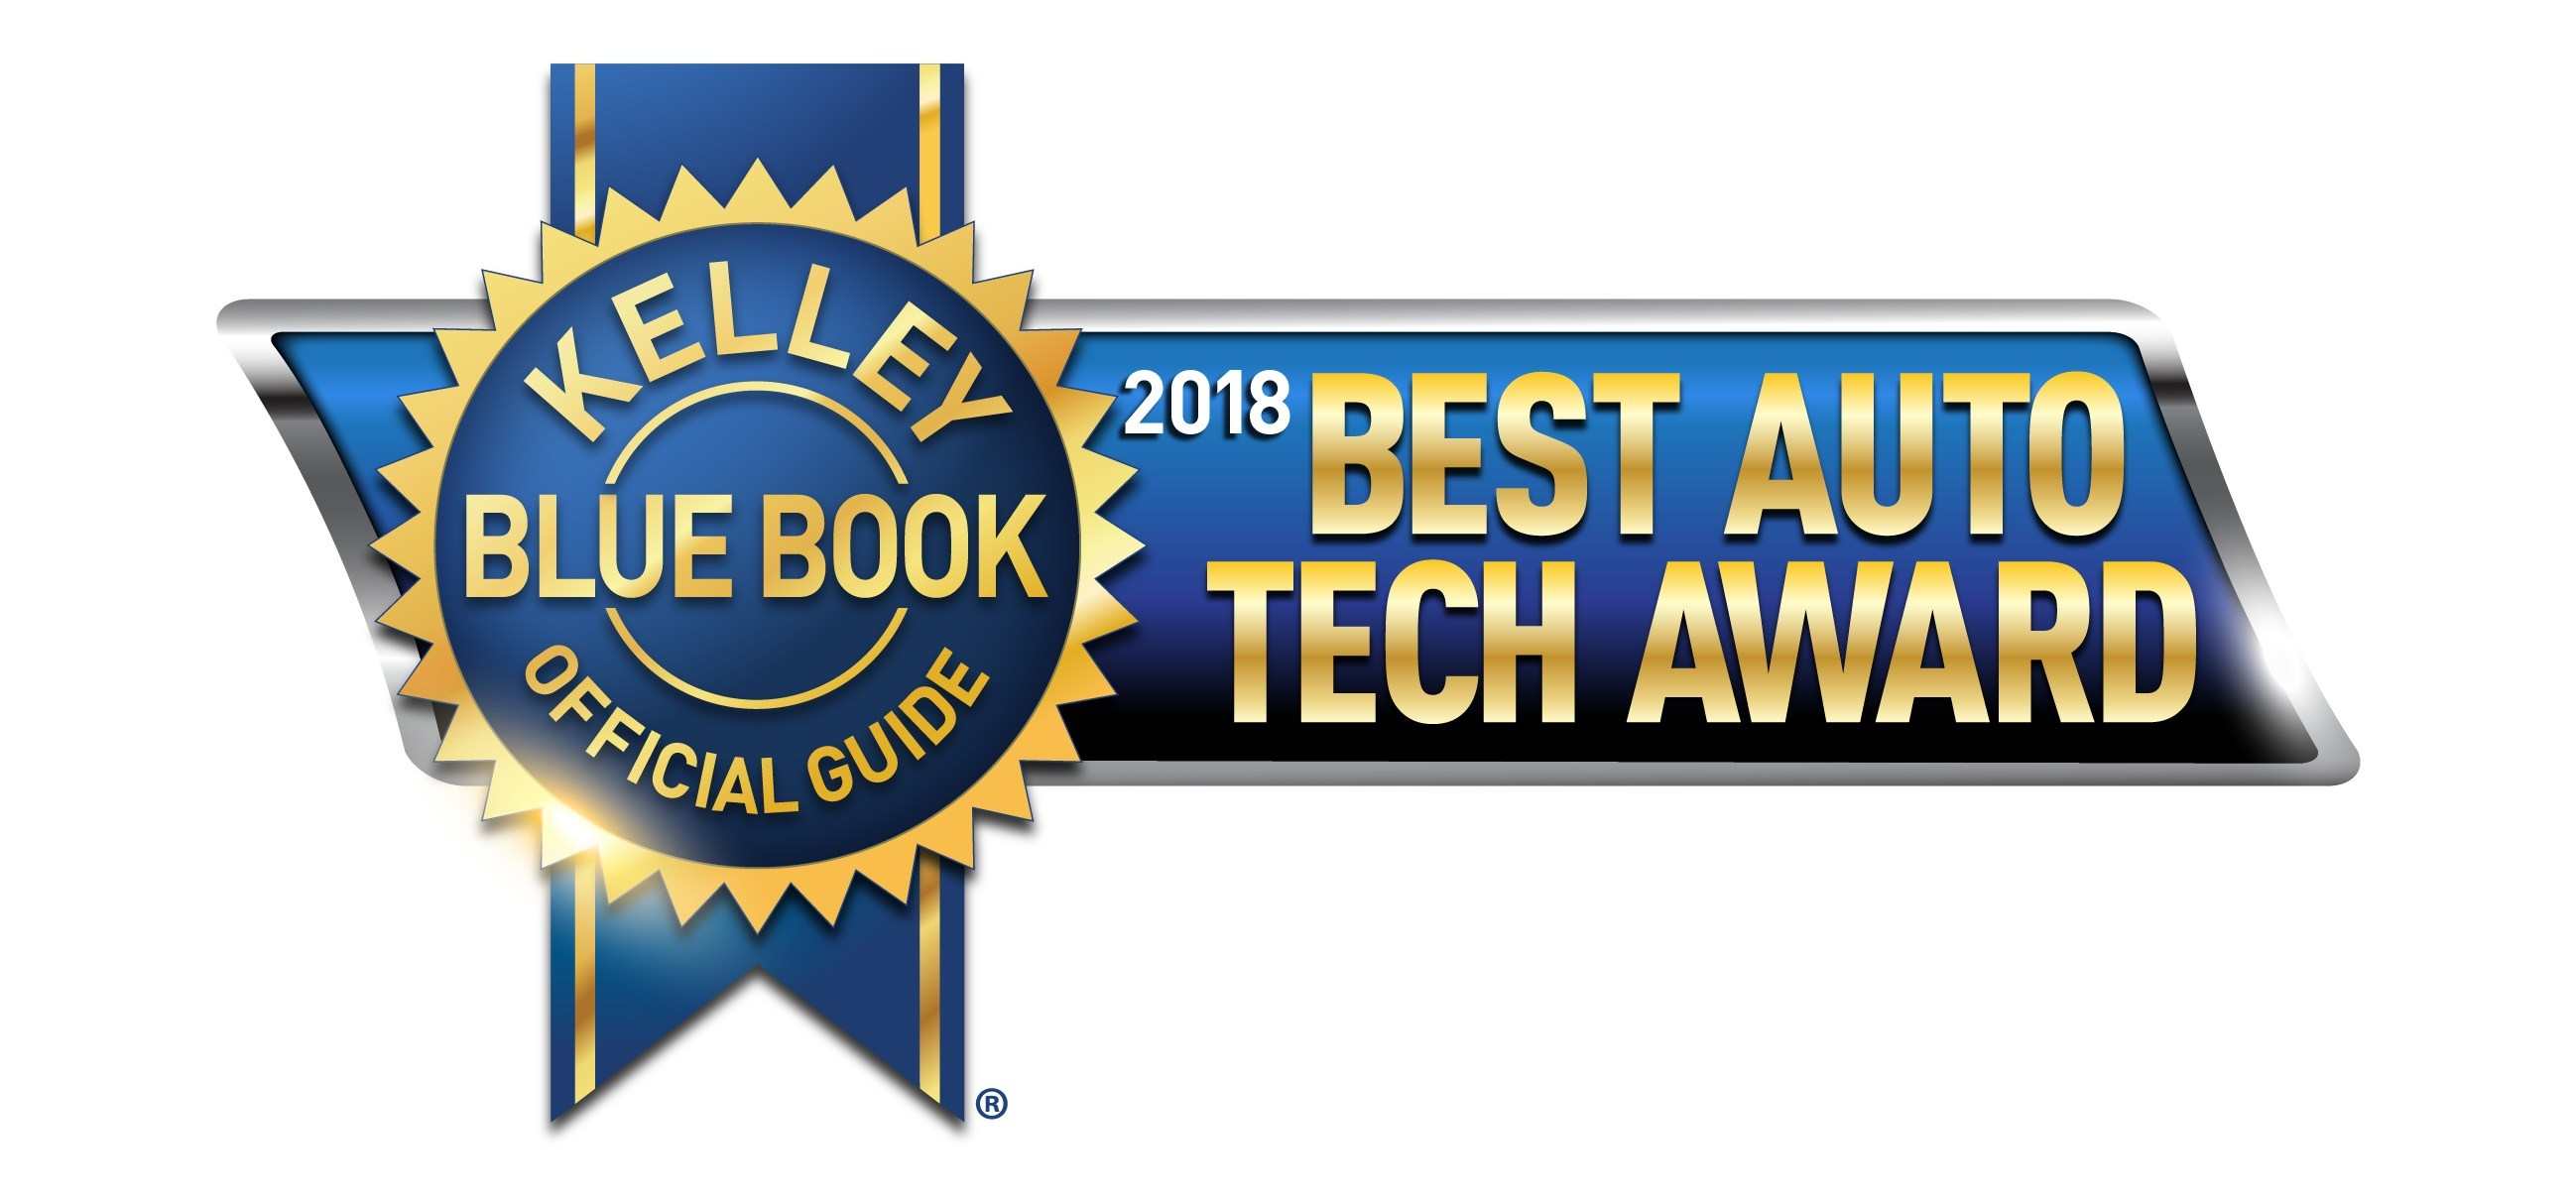 kelley blue book names 2018 best auto tech award winners nov 8 2017. Black Bedroom Furniture Sets. Home Design Ideas